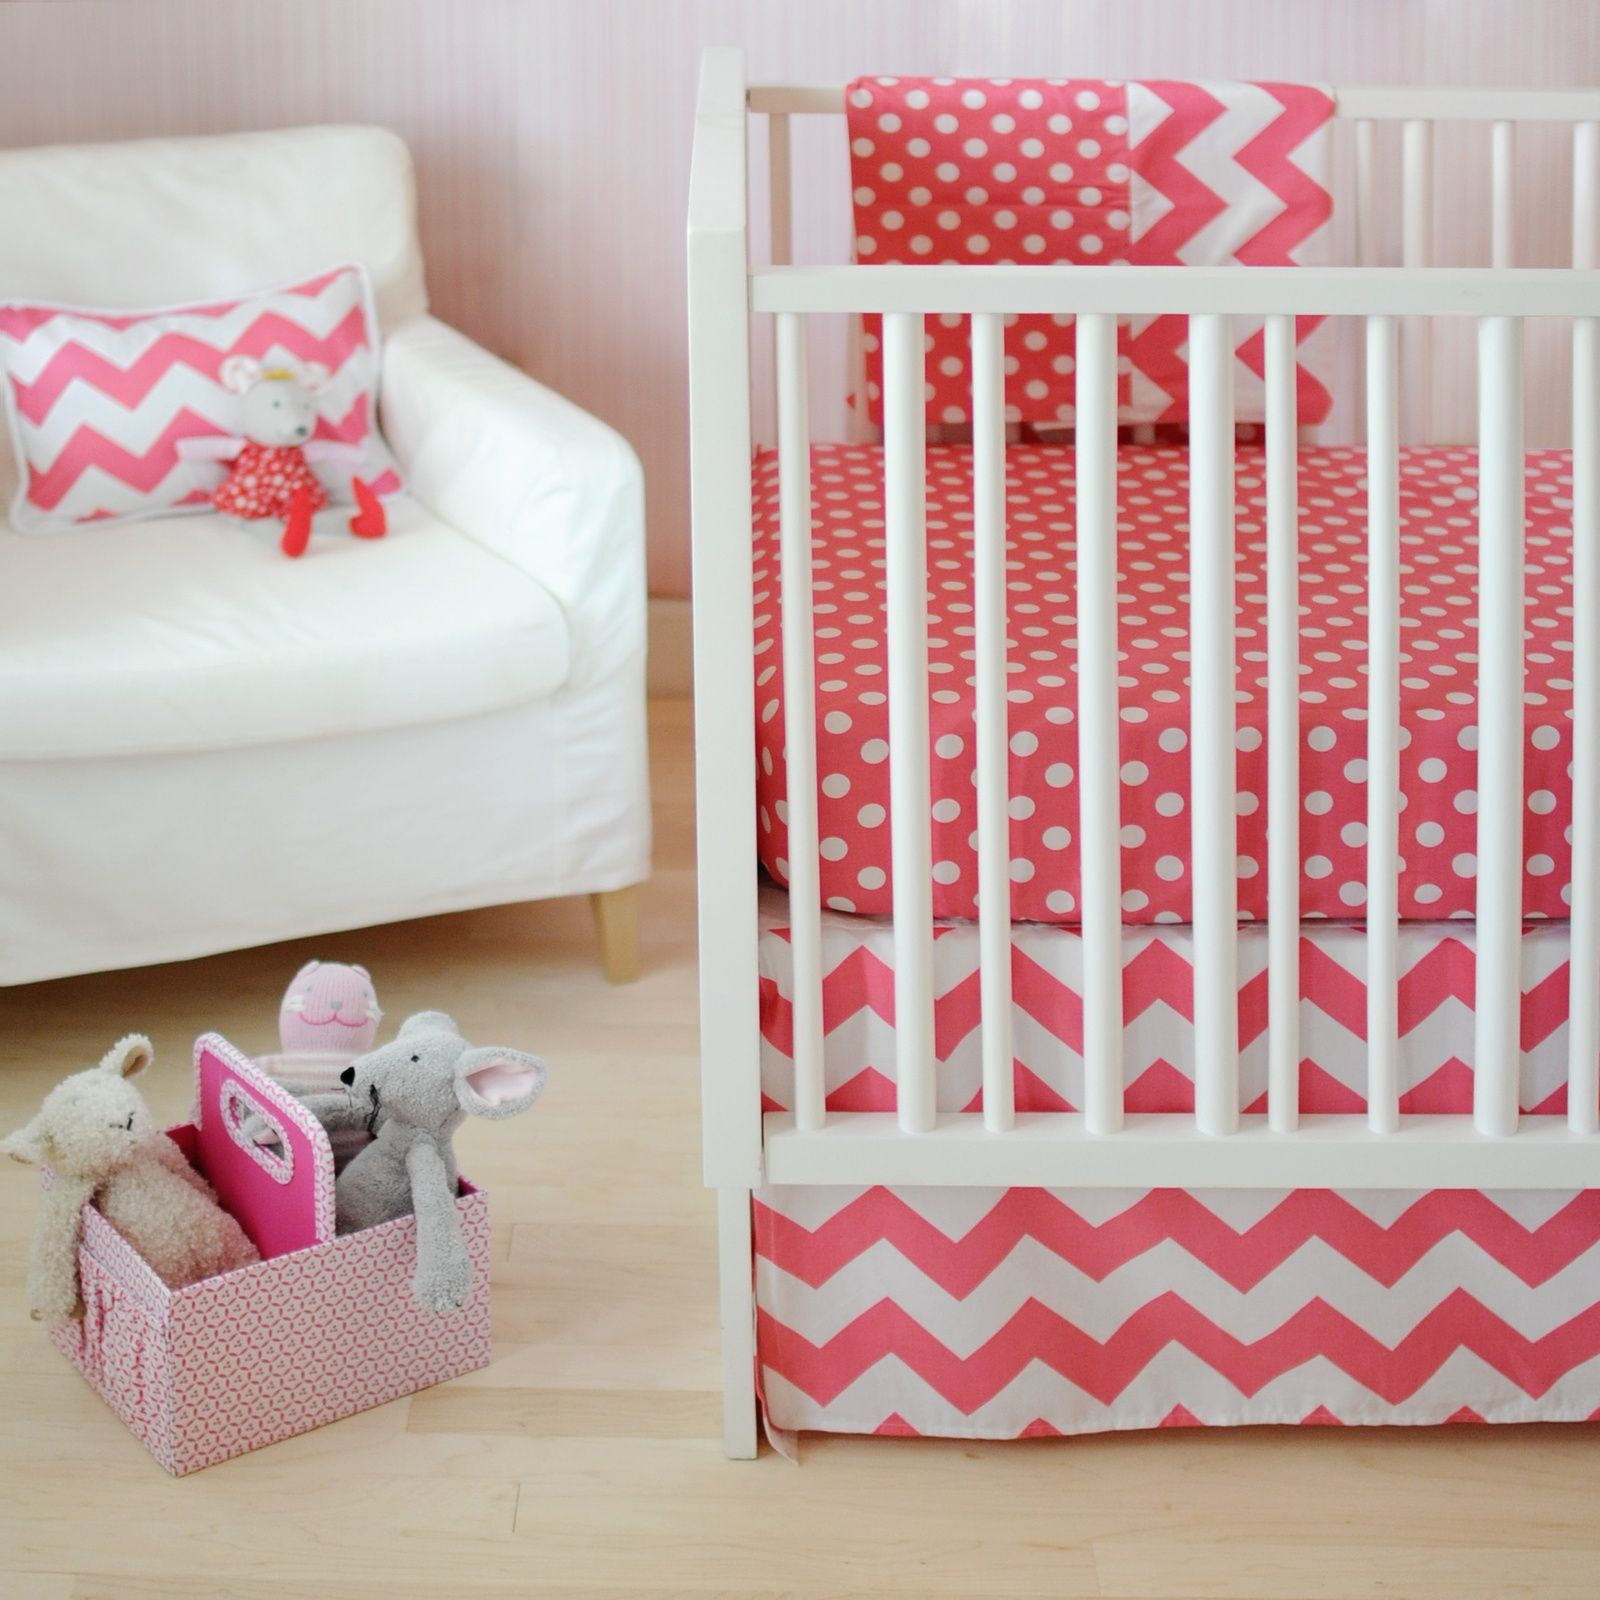 Crib Bedding Patterns Interesting Inspiration Ideas